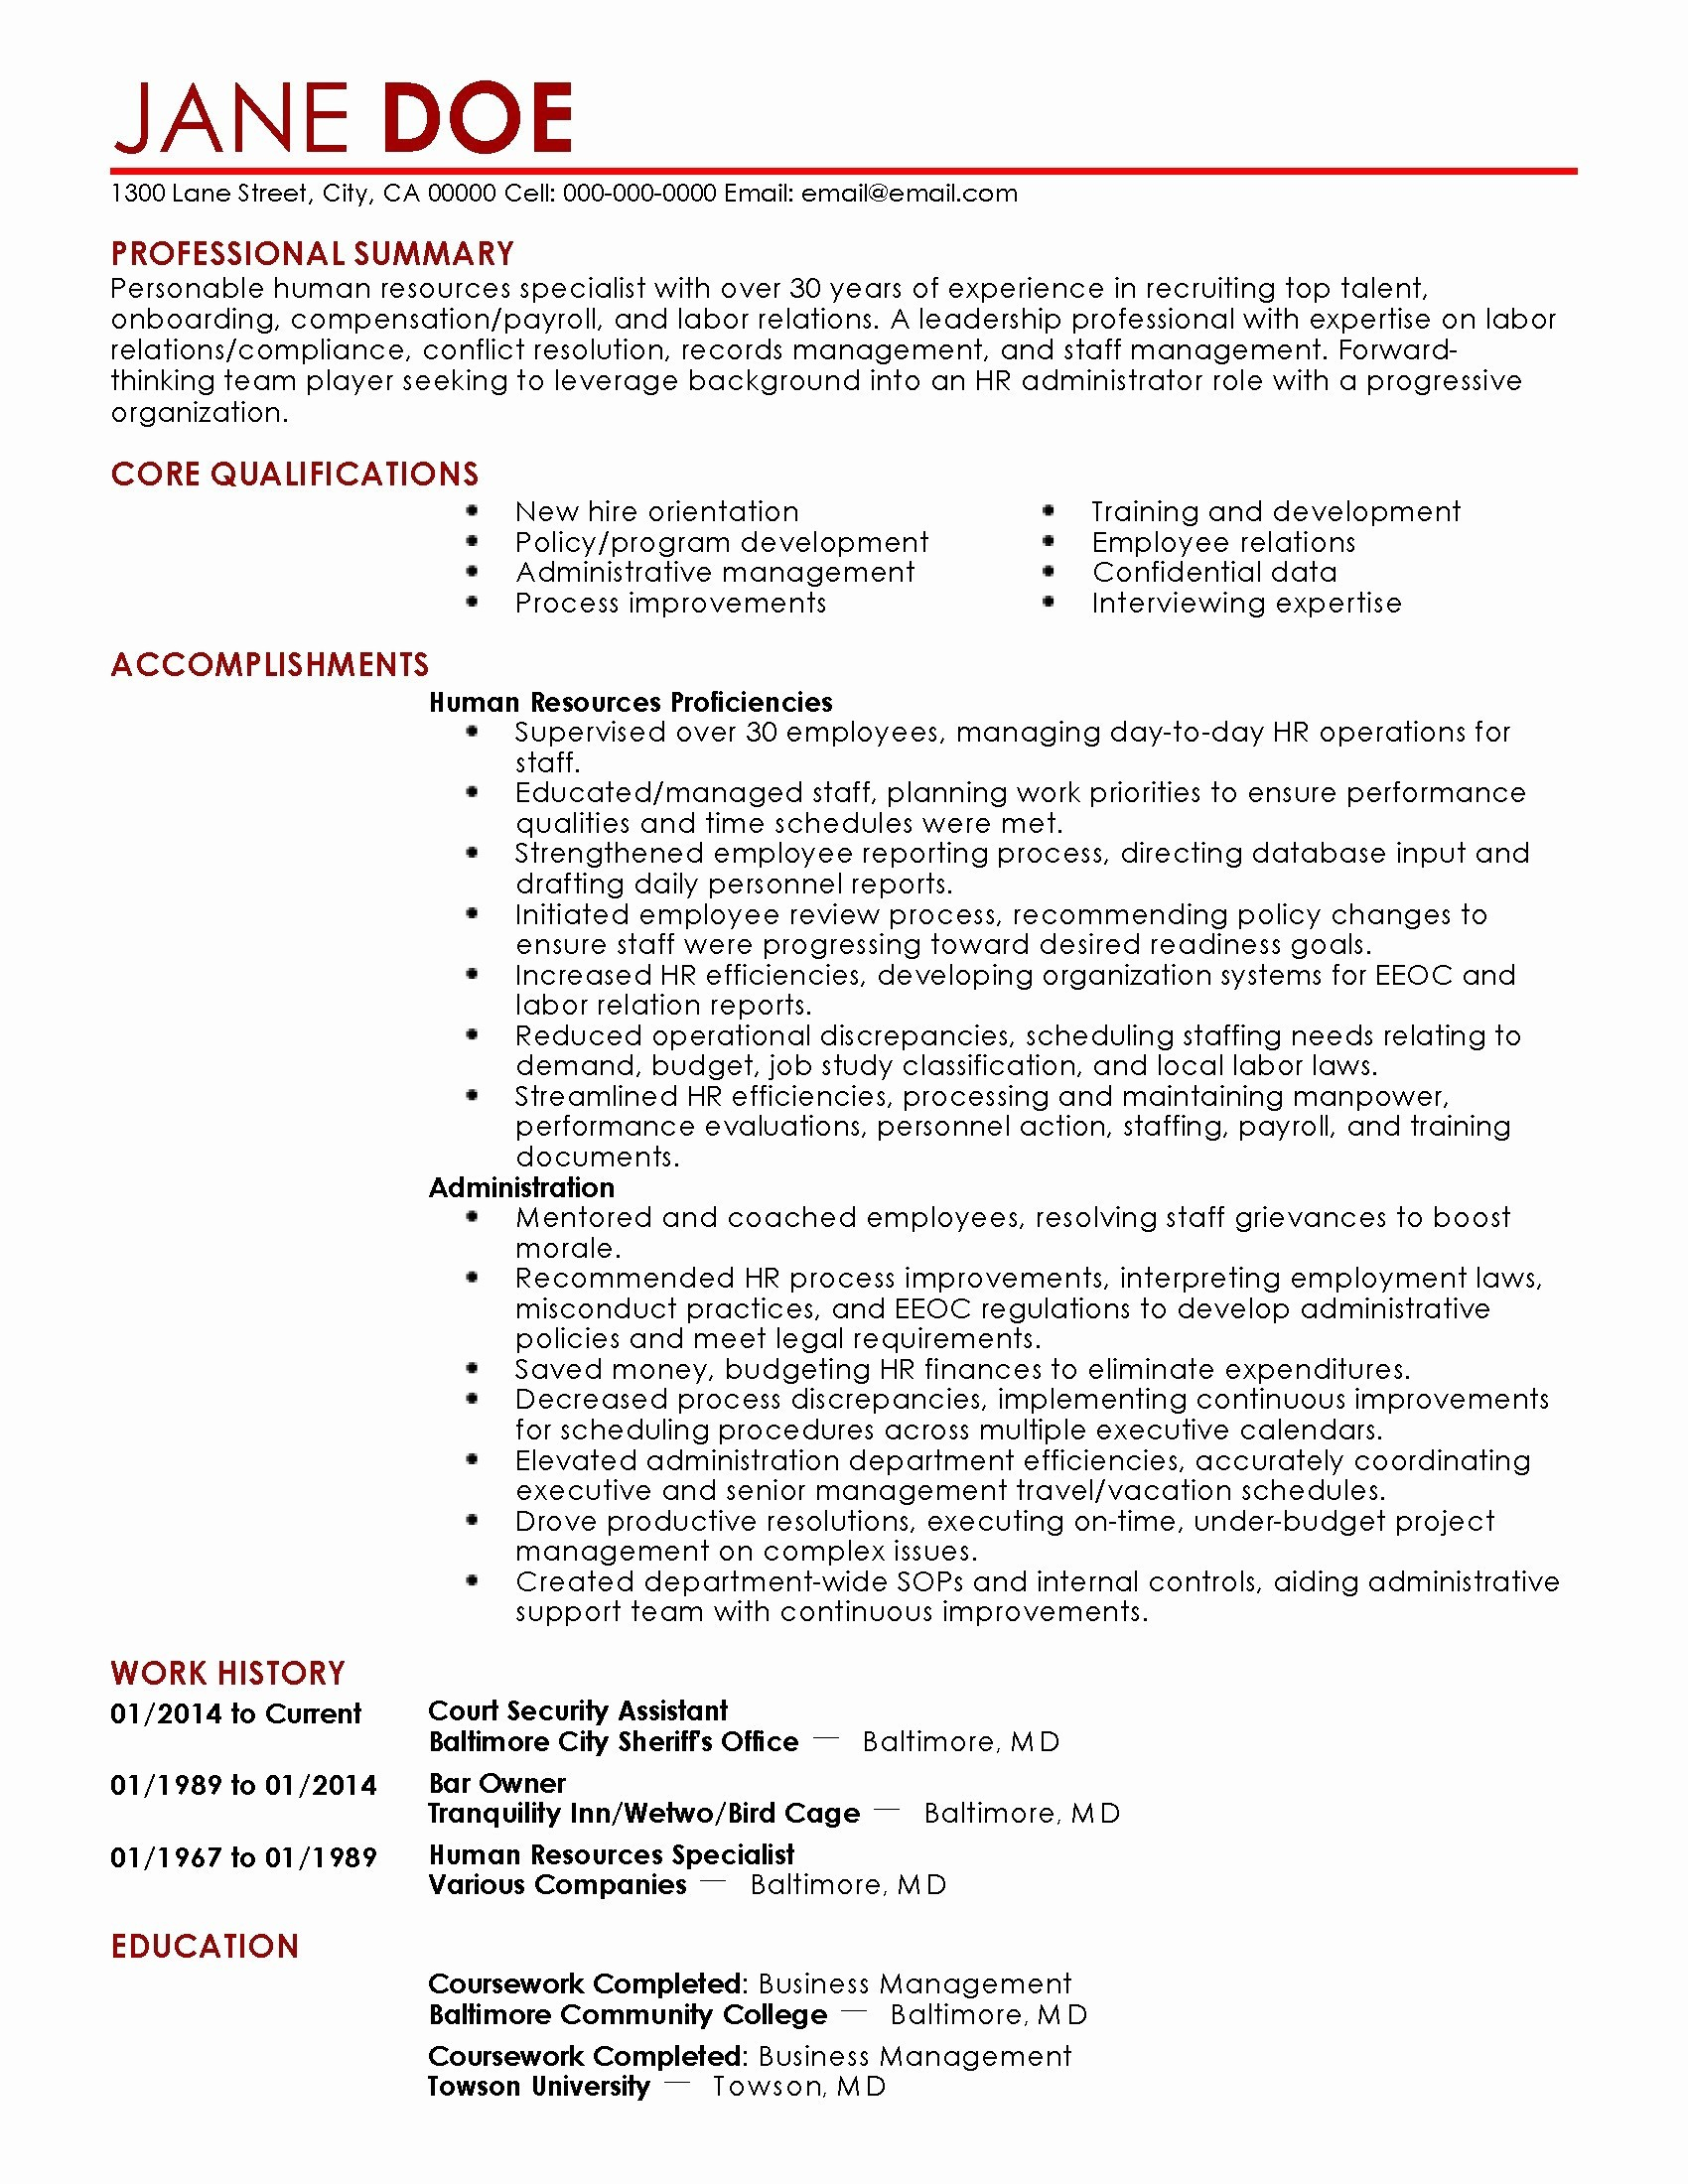 Best Administrative assistant Resume - 19 Unique Medical assistant Resume Template